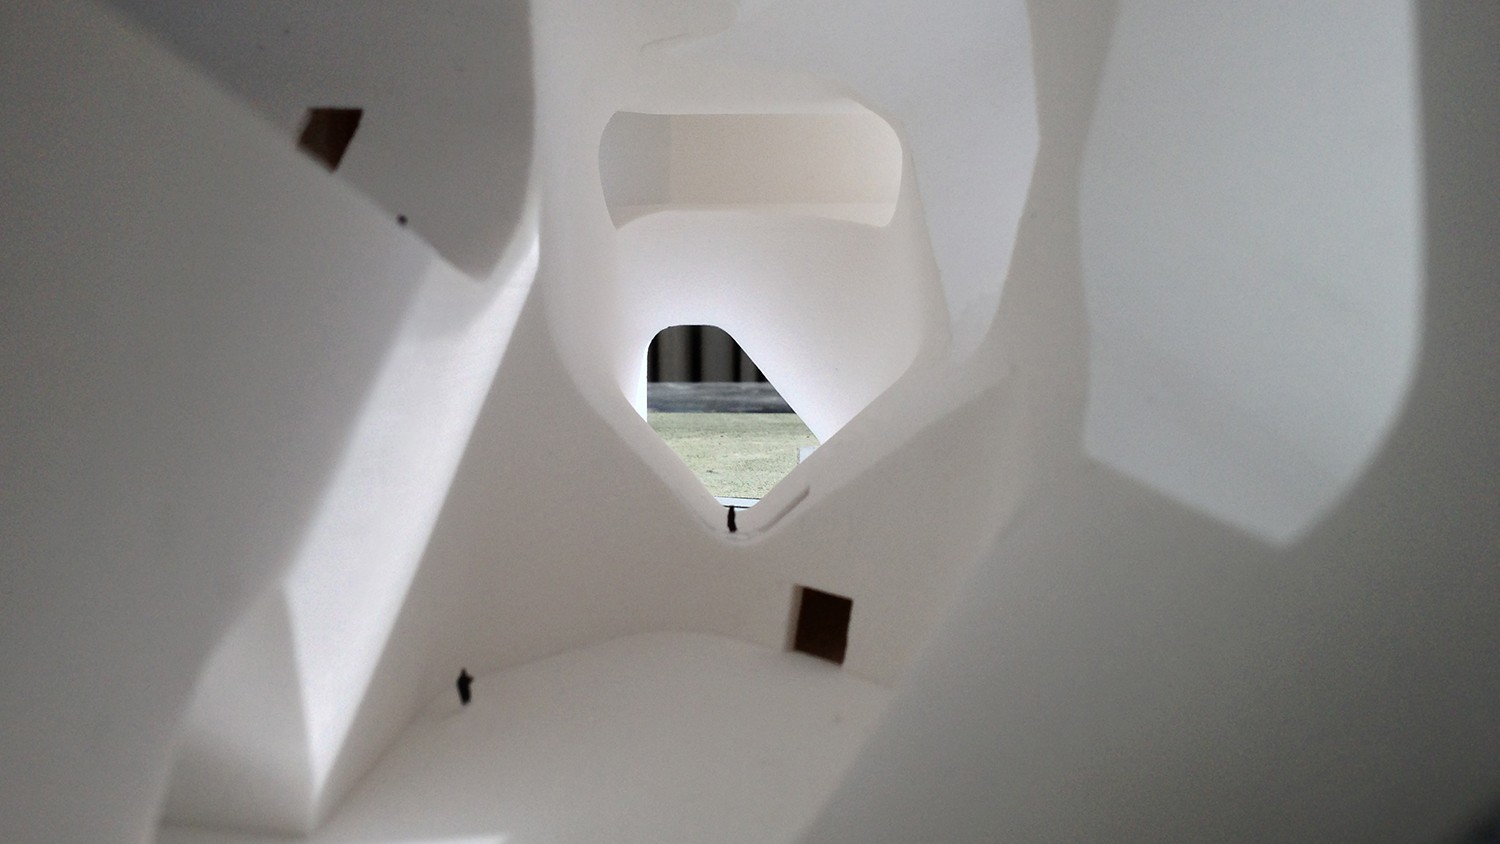 https://s3.us-east-2.amazonaws.com/steven-holl/uploads/projects/project-images/StevenHollArchitects_Tianjin_IMG_0170_WH.jpg